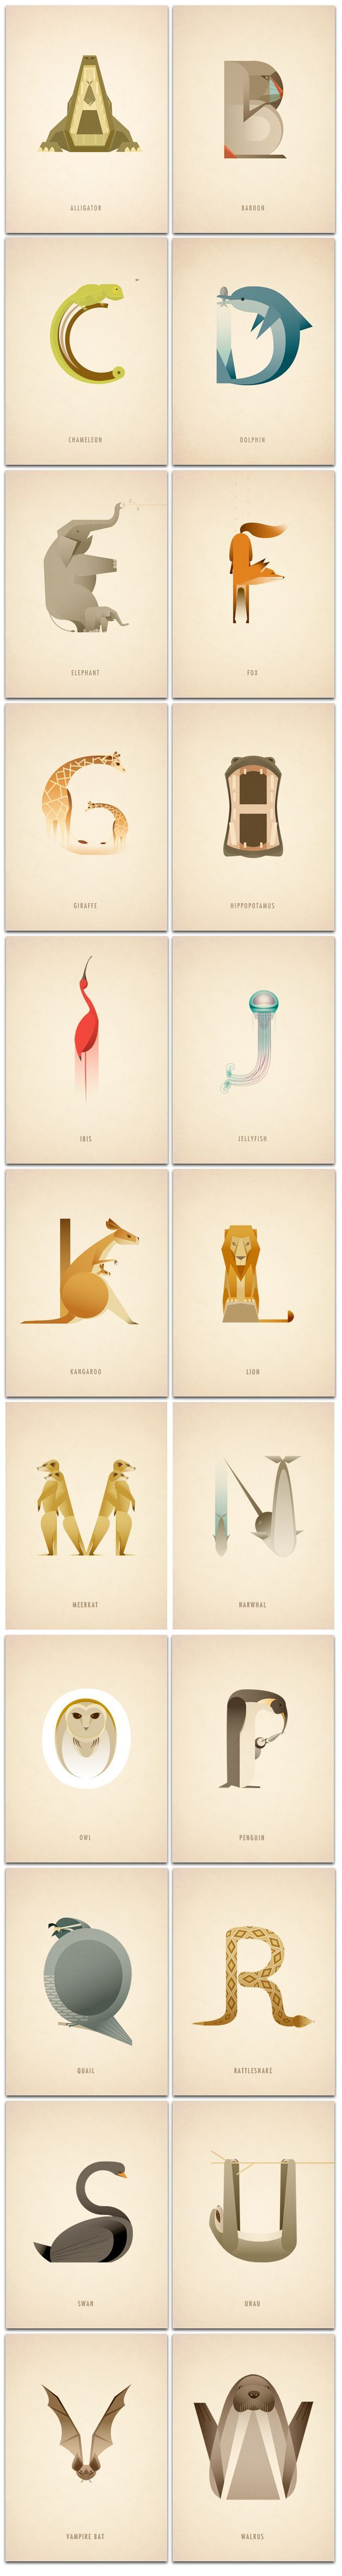 This animal alphabet by Marcus Reed is very bright and colourful. Great for children as each word is made up of one or a group of animals that start with the same letter. Very educational and helpful for anyone struggling to find an animal that starts with a certain letter, it not too complex to understand, simple and clear designs.